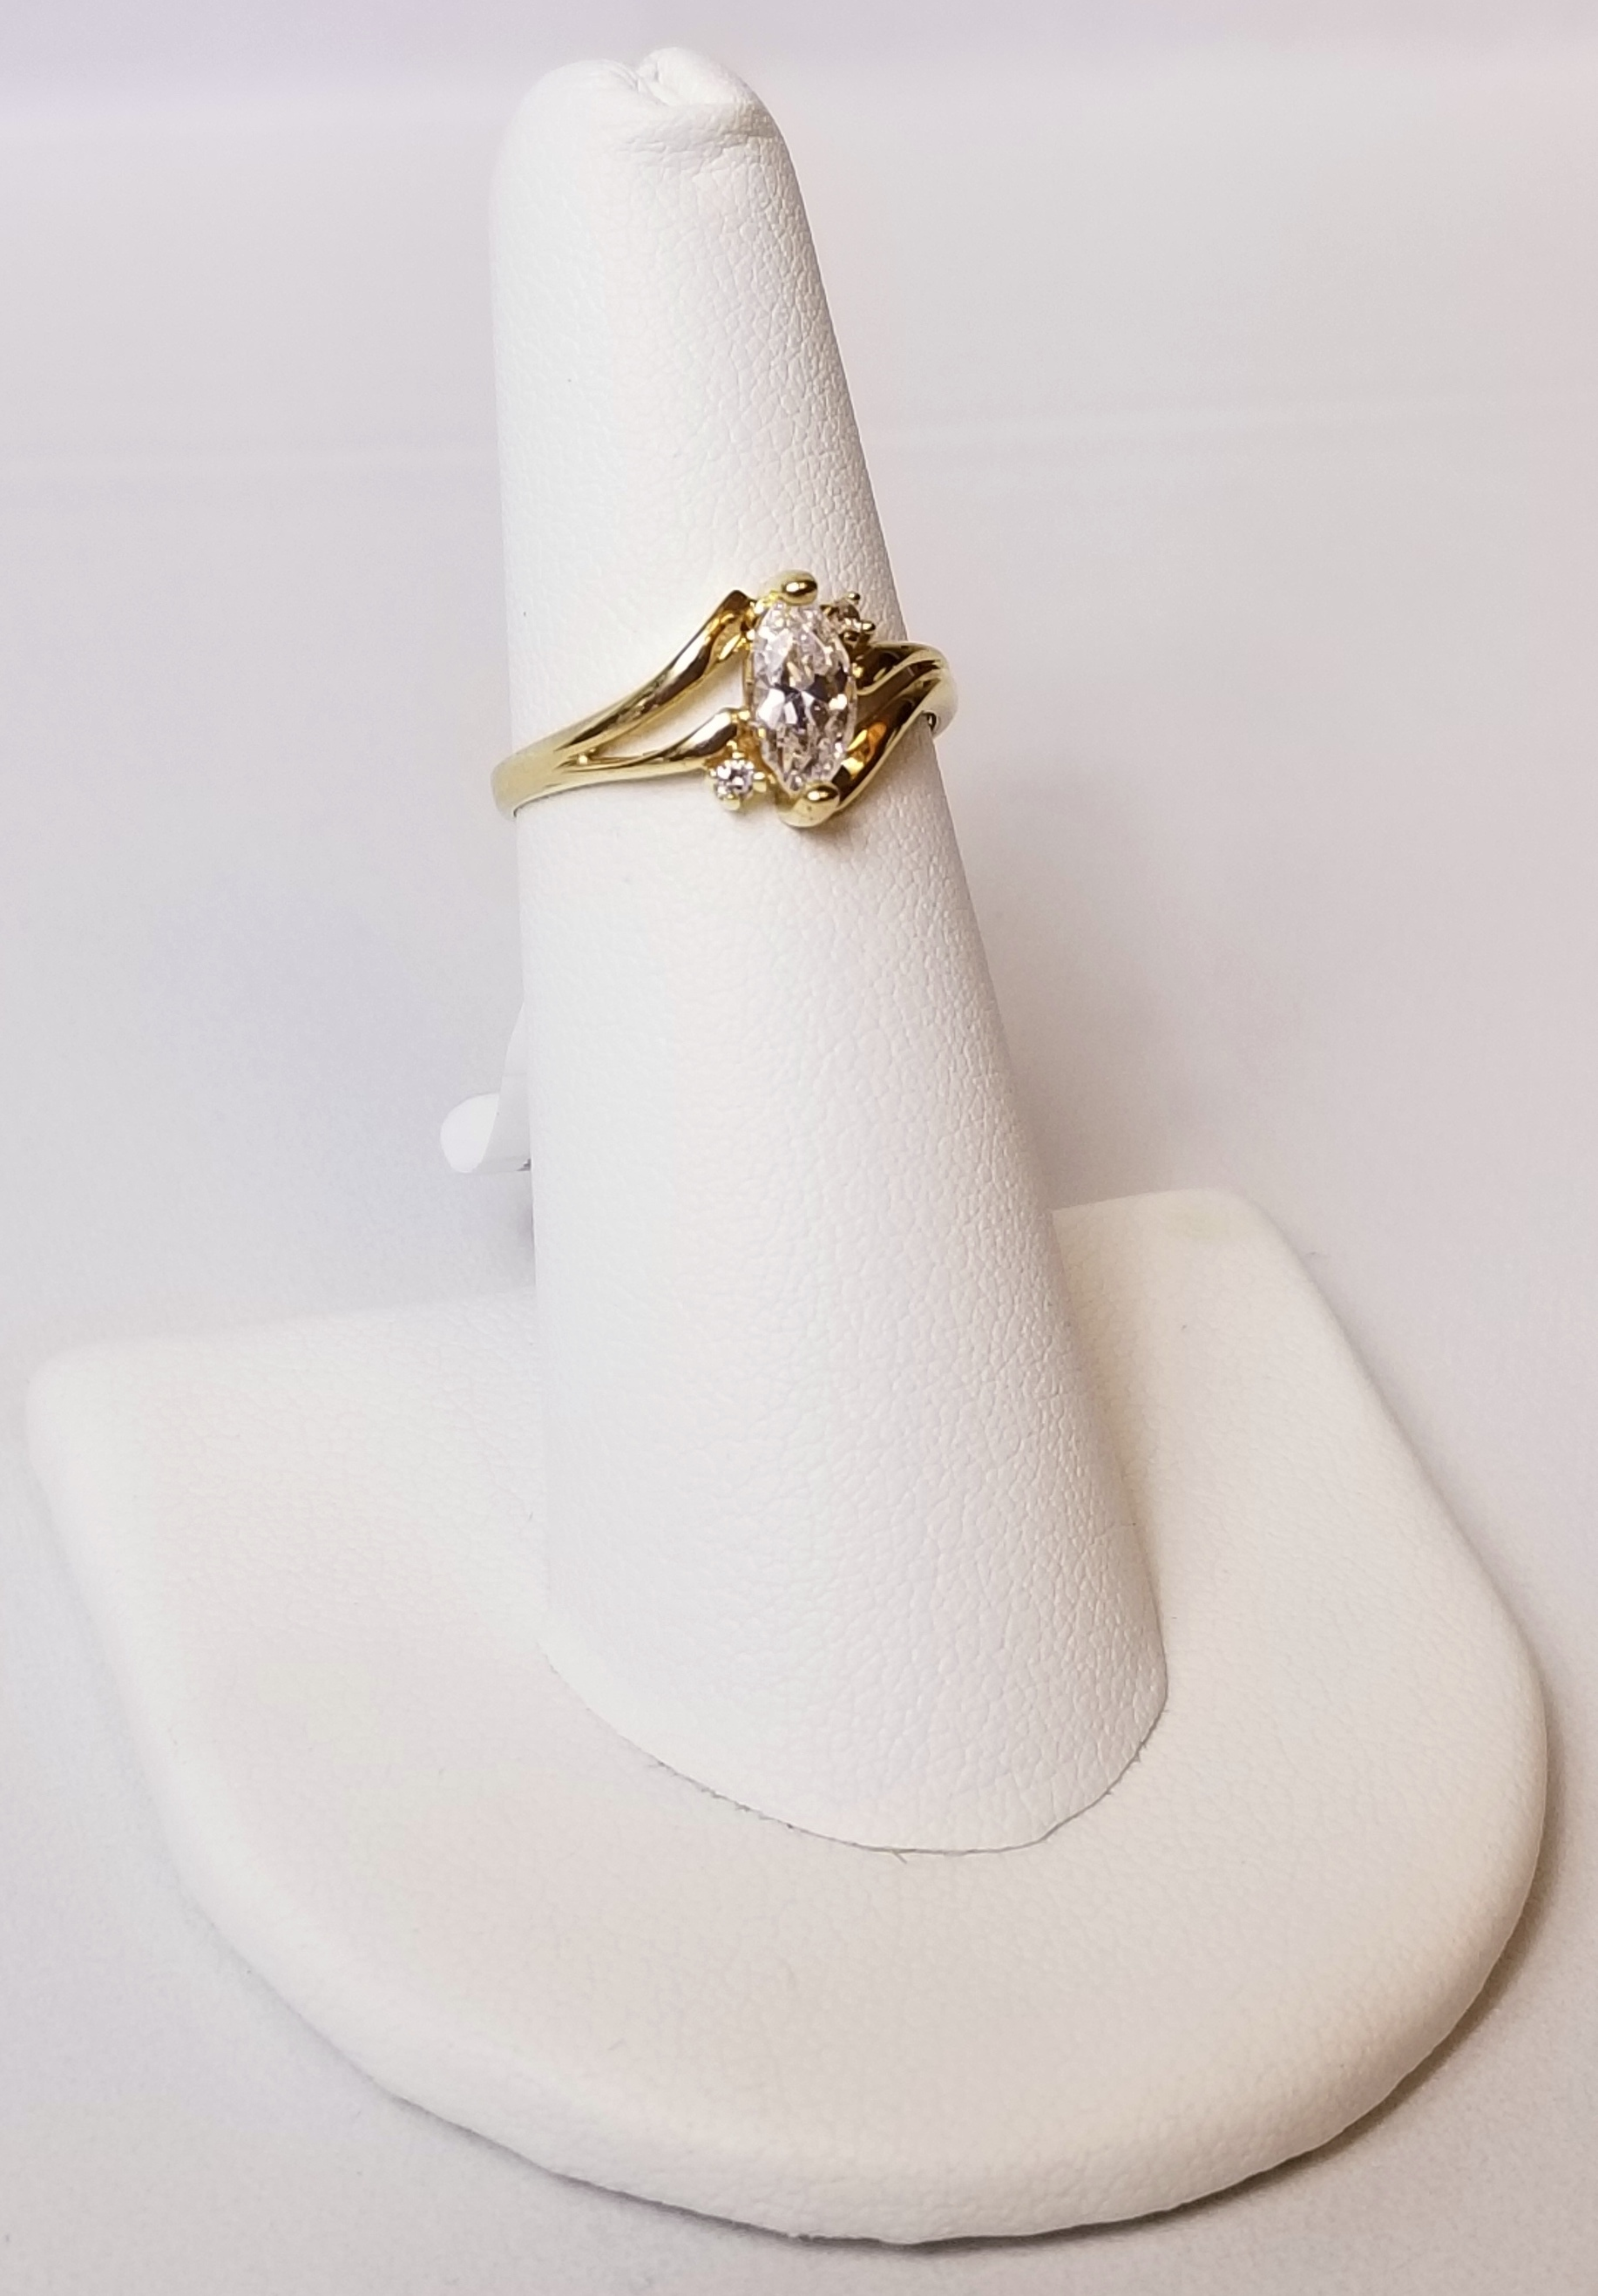 10K Yellow Gold 1.80g Ring with Clear Stones